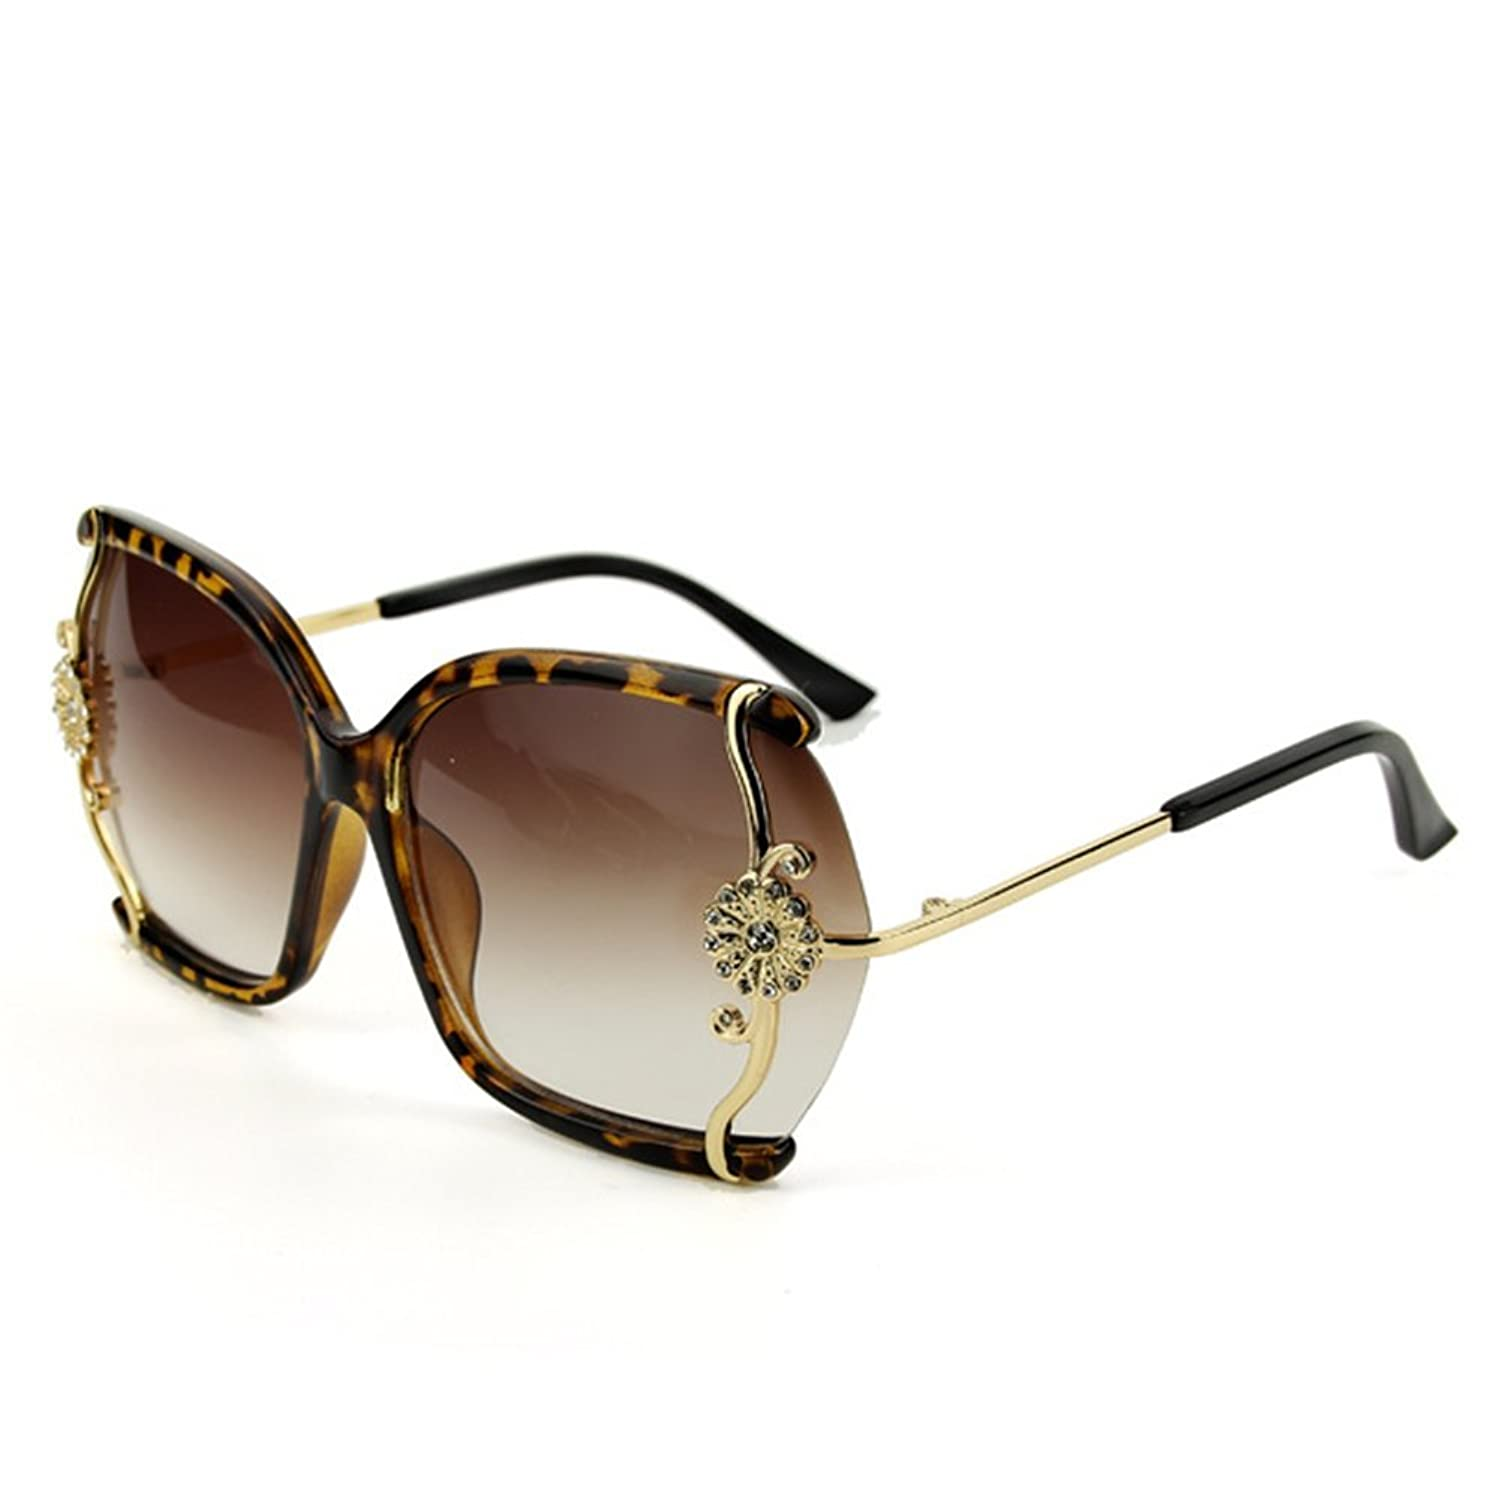 LuxuryLady-3 Sexy Lady Flower Necessary in Summer Fashion Driving Travel Sunglasses